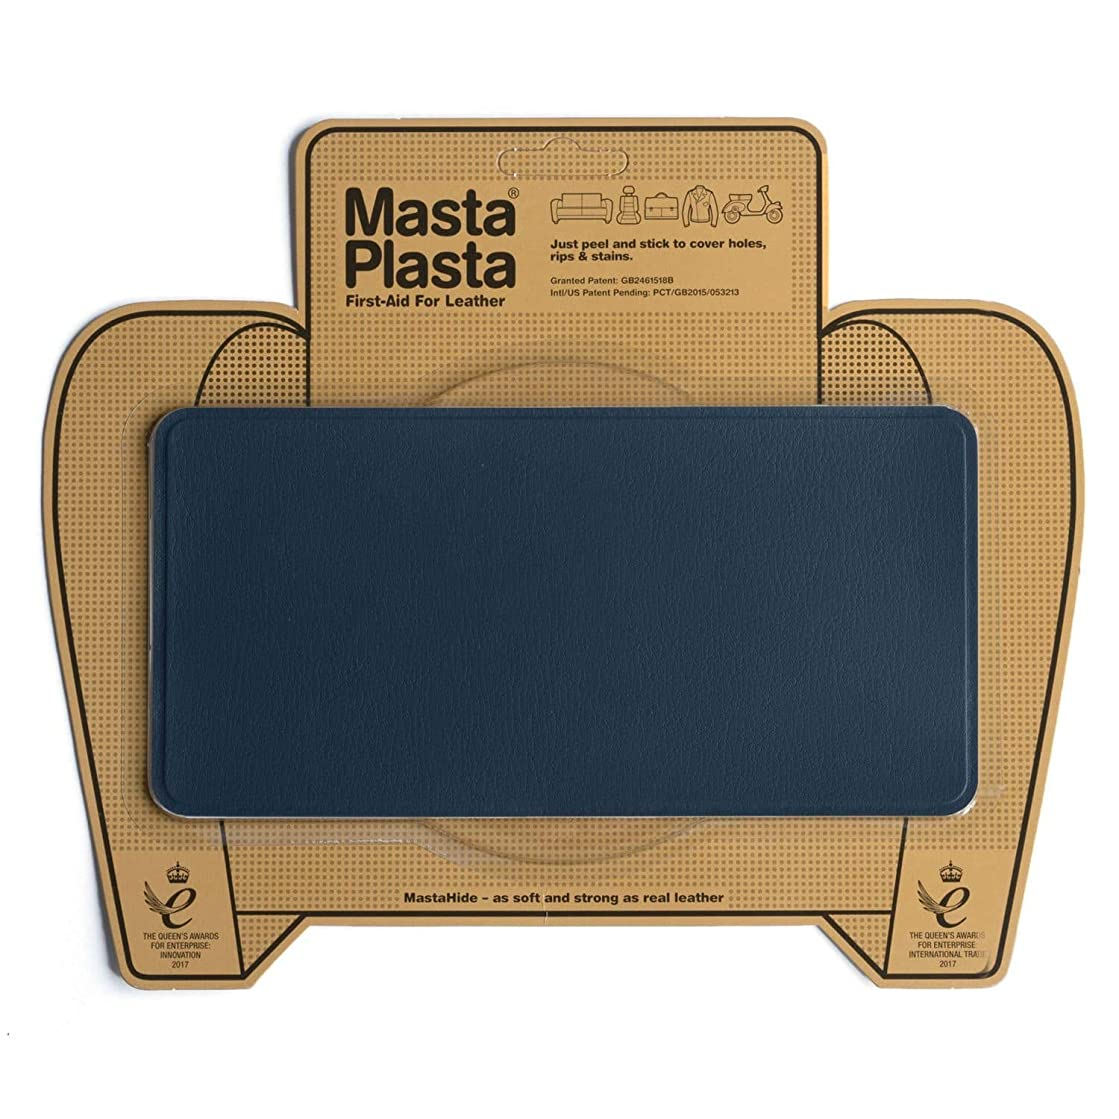 MastaPlasta Self-Adhesive Patch for Leather and Vinyl Repair, Large, Navy - 8 x 4 Inch - Multiple Colors Available